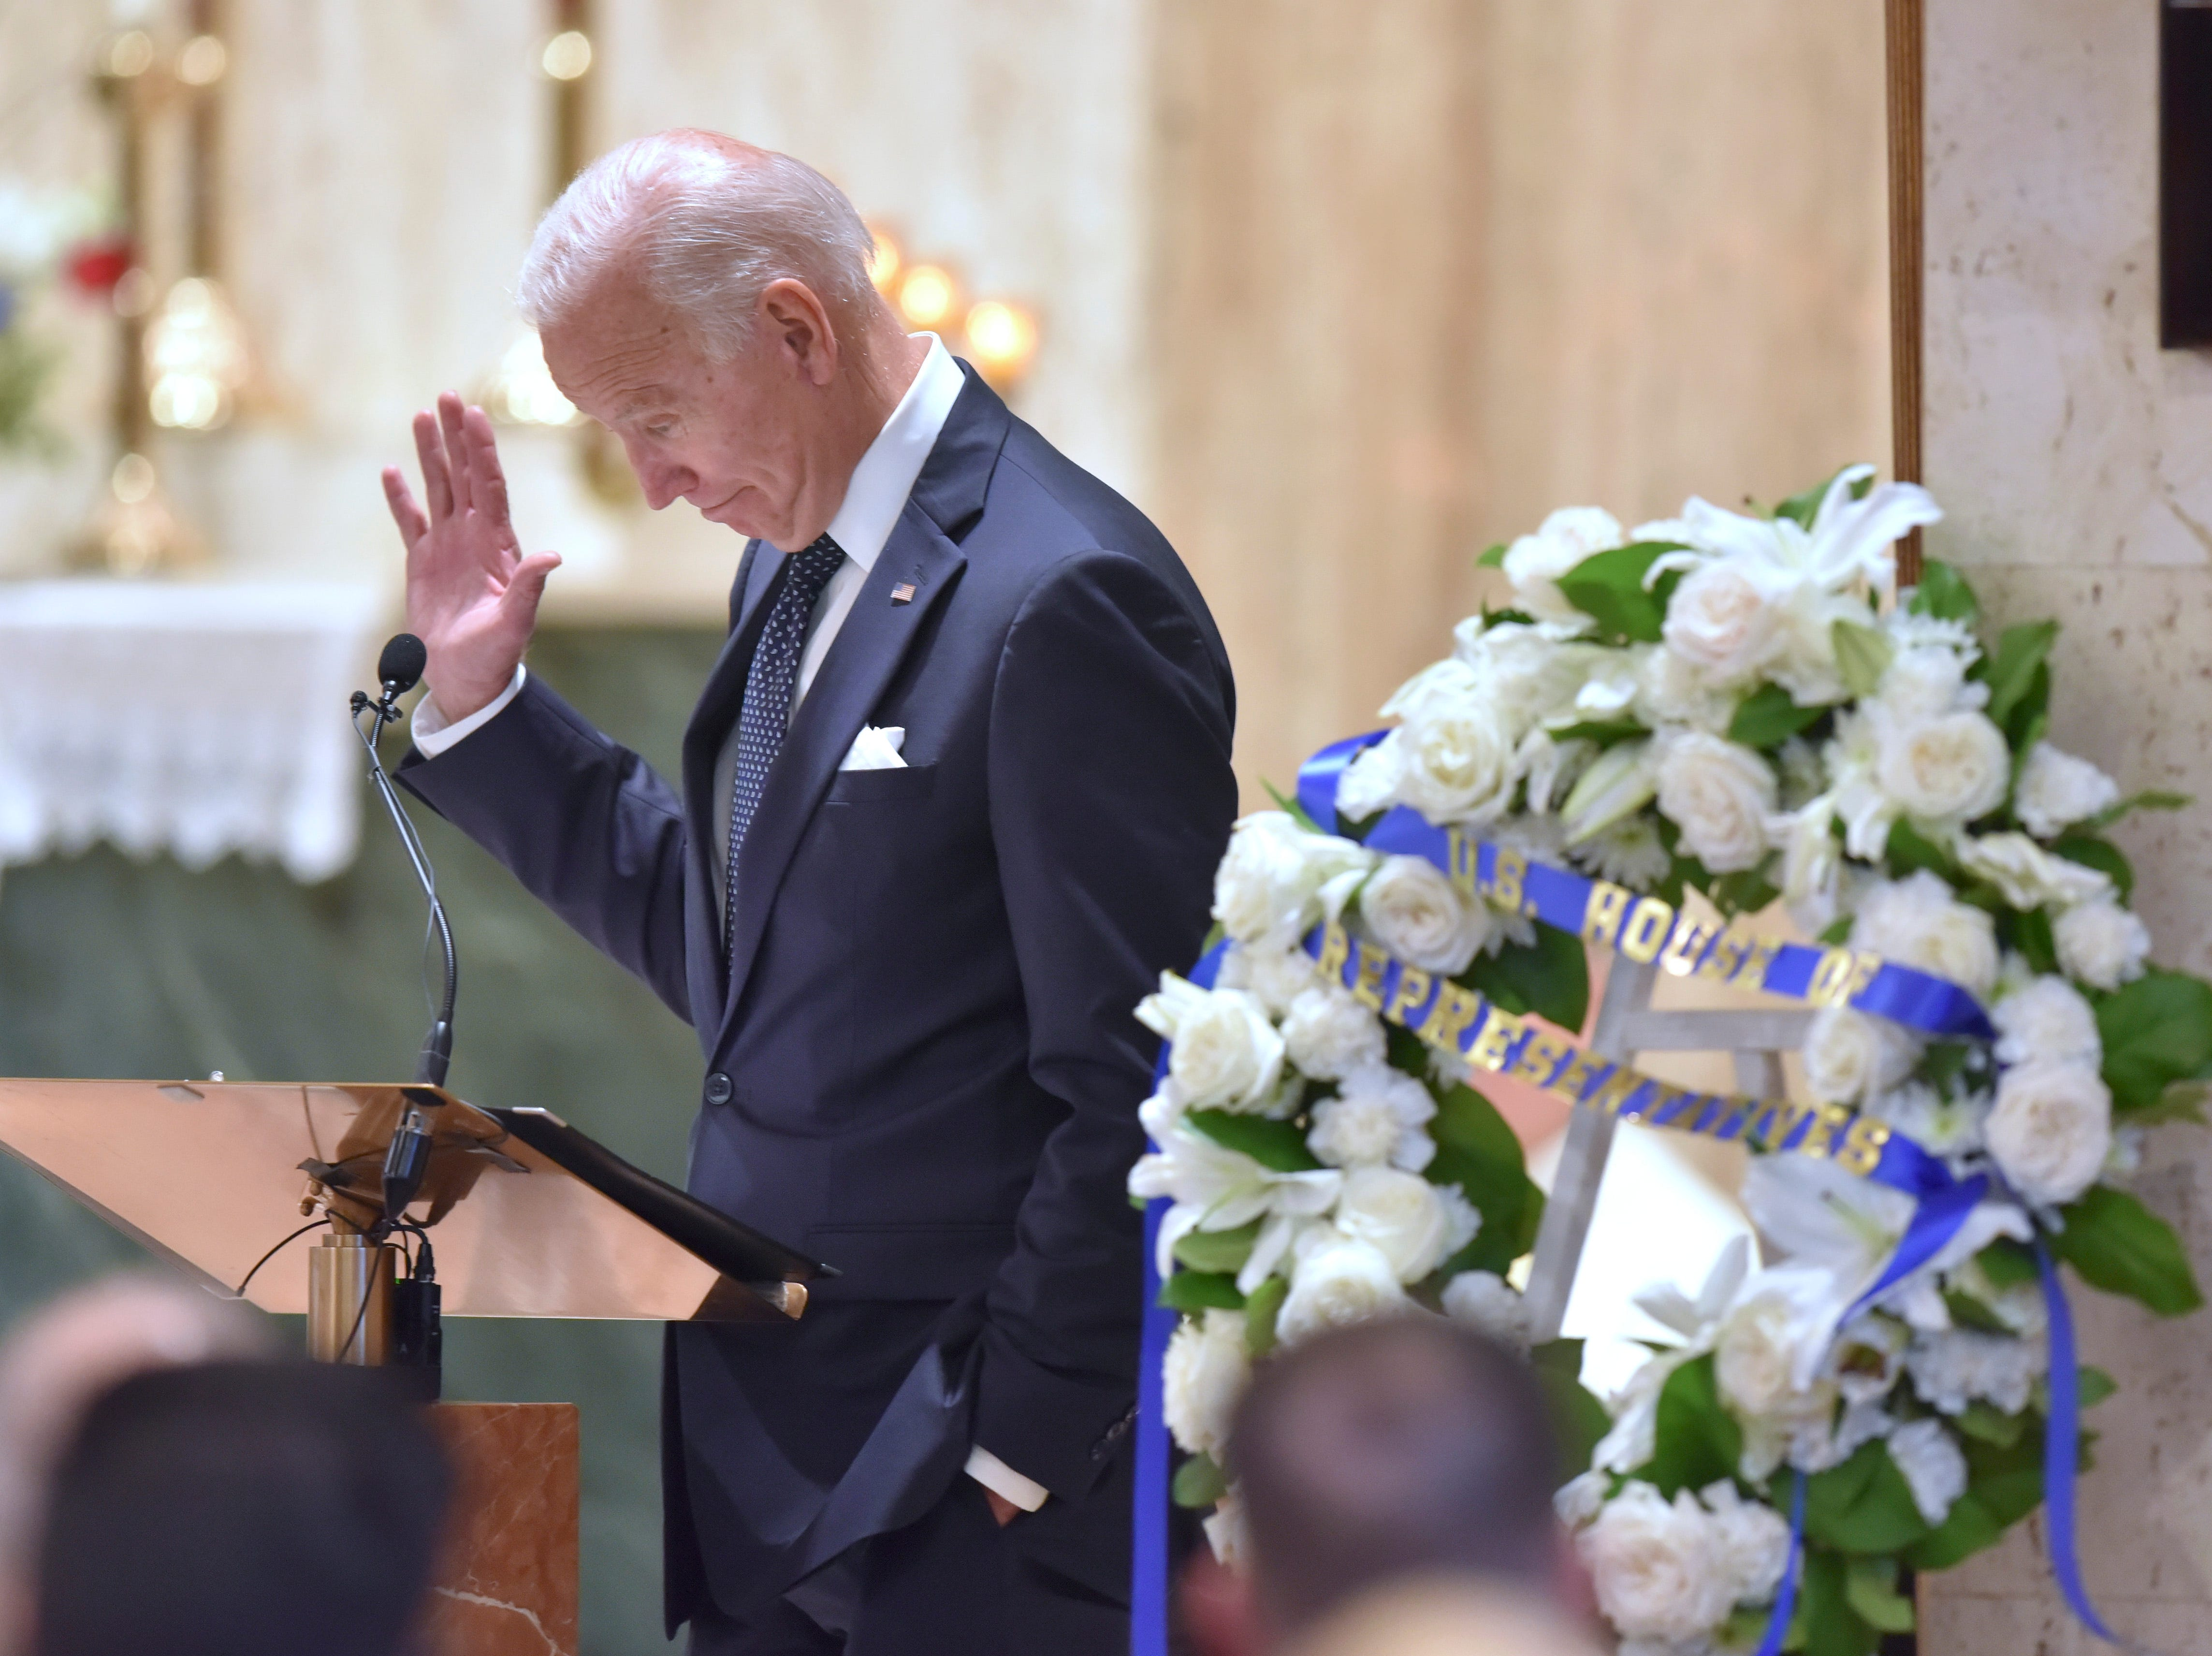 Former U.S. Vice President Joe Biden gives a speech during John D. Dingell's funeral.